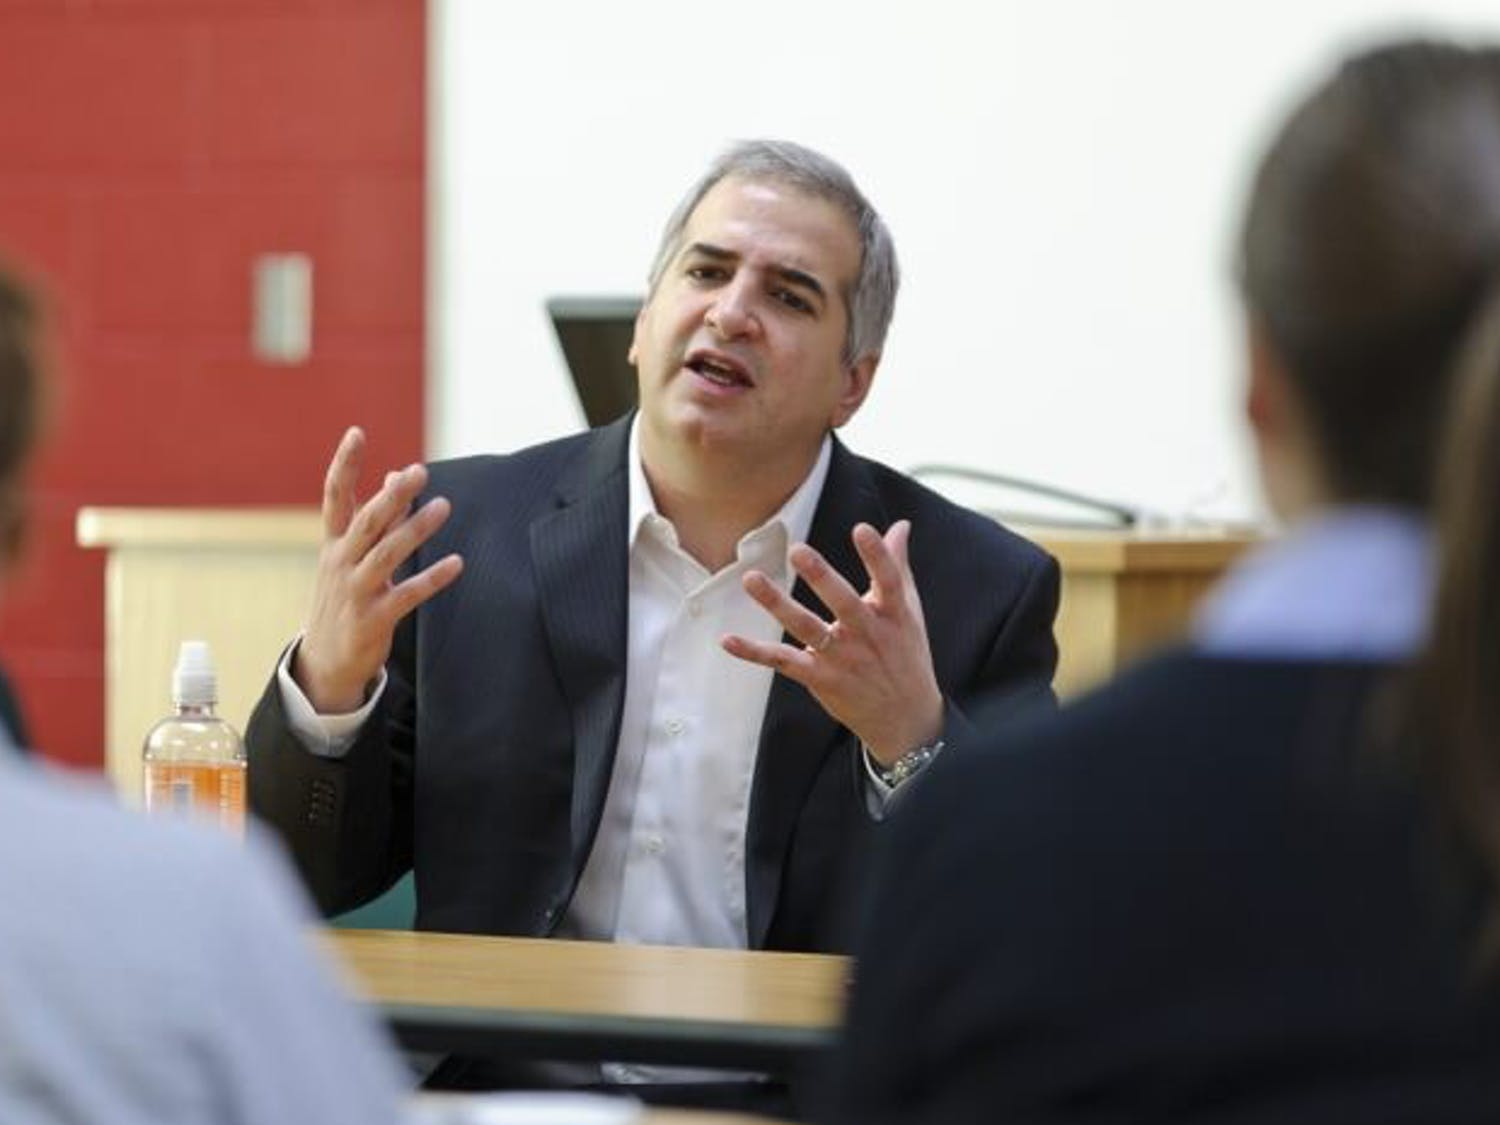 UW-Madison alumnus Anthony Shadid is honored annually with an award for journalism ethics.